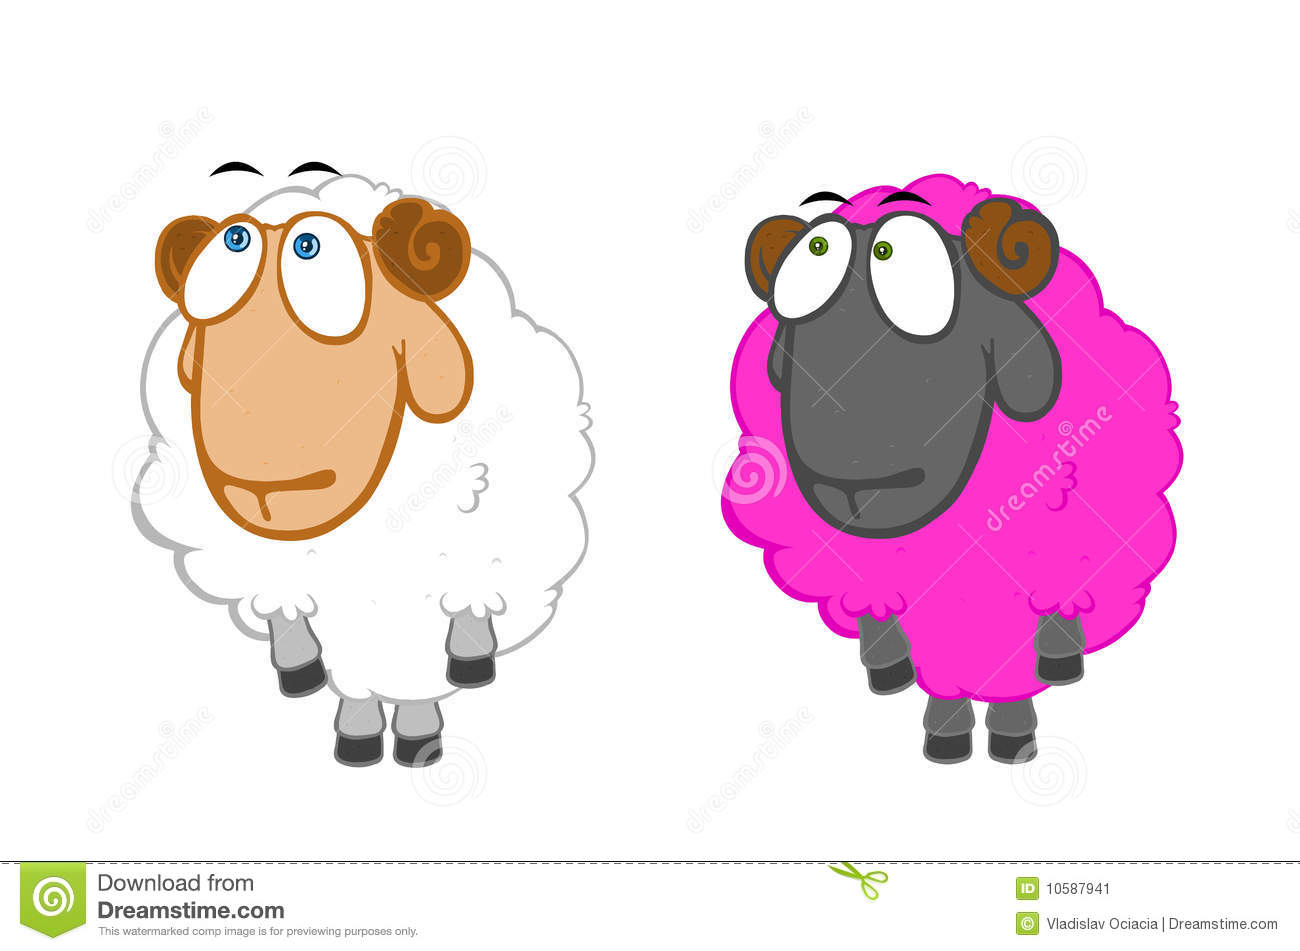 Two innocent sheep